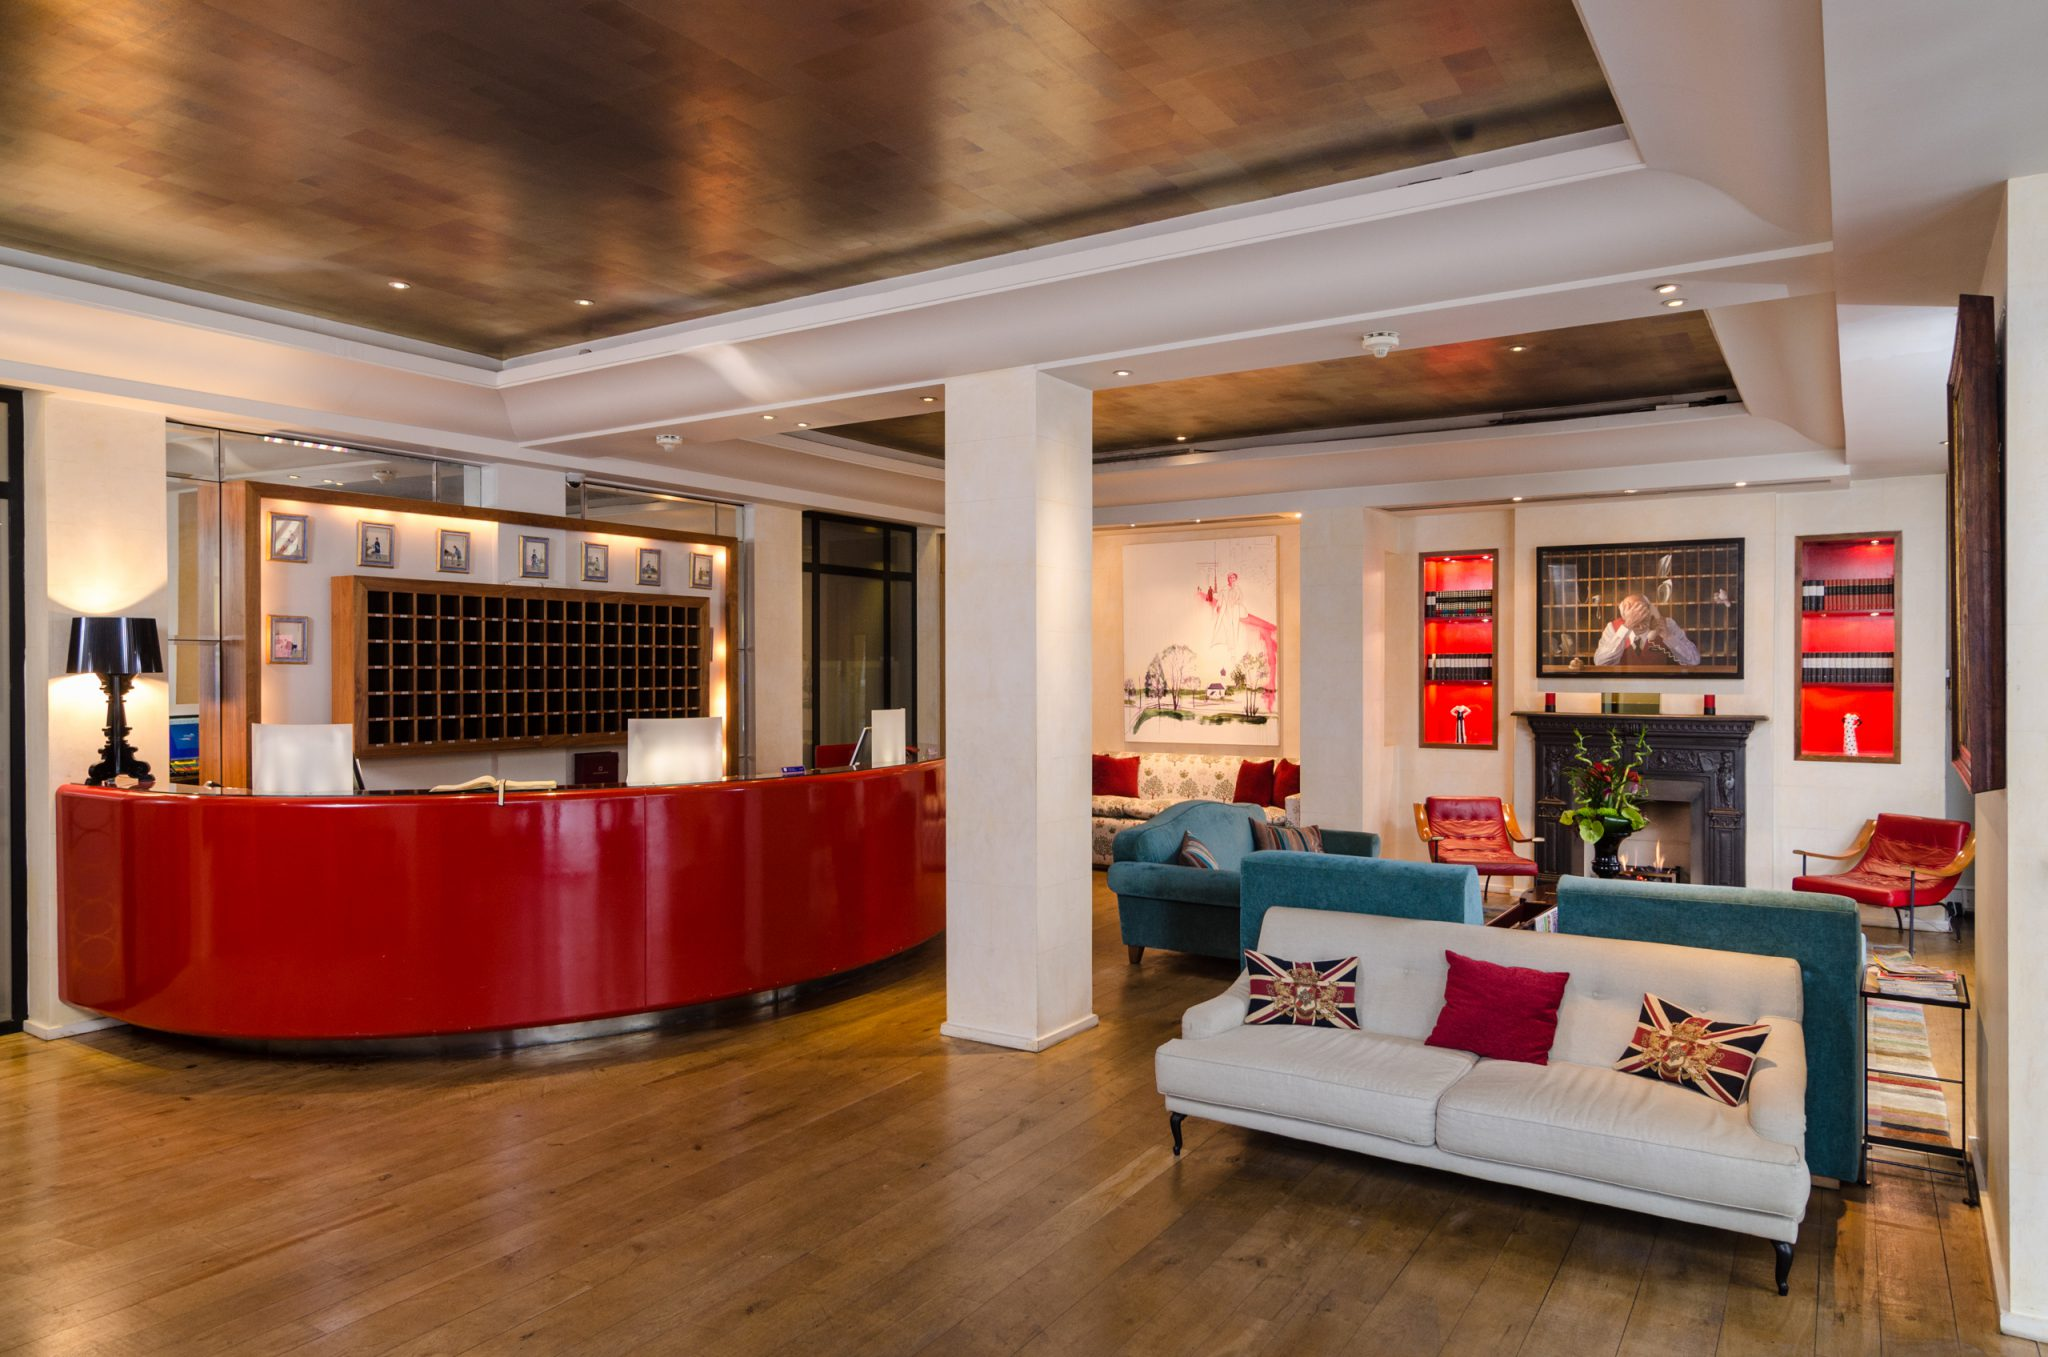 The Lobby at the Sloane Square Hotel. Photo courtesy of Sloane Square Hotel.